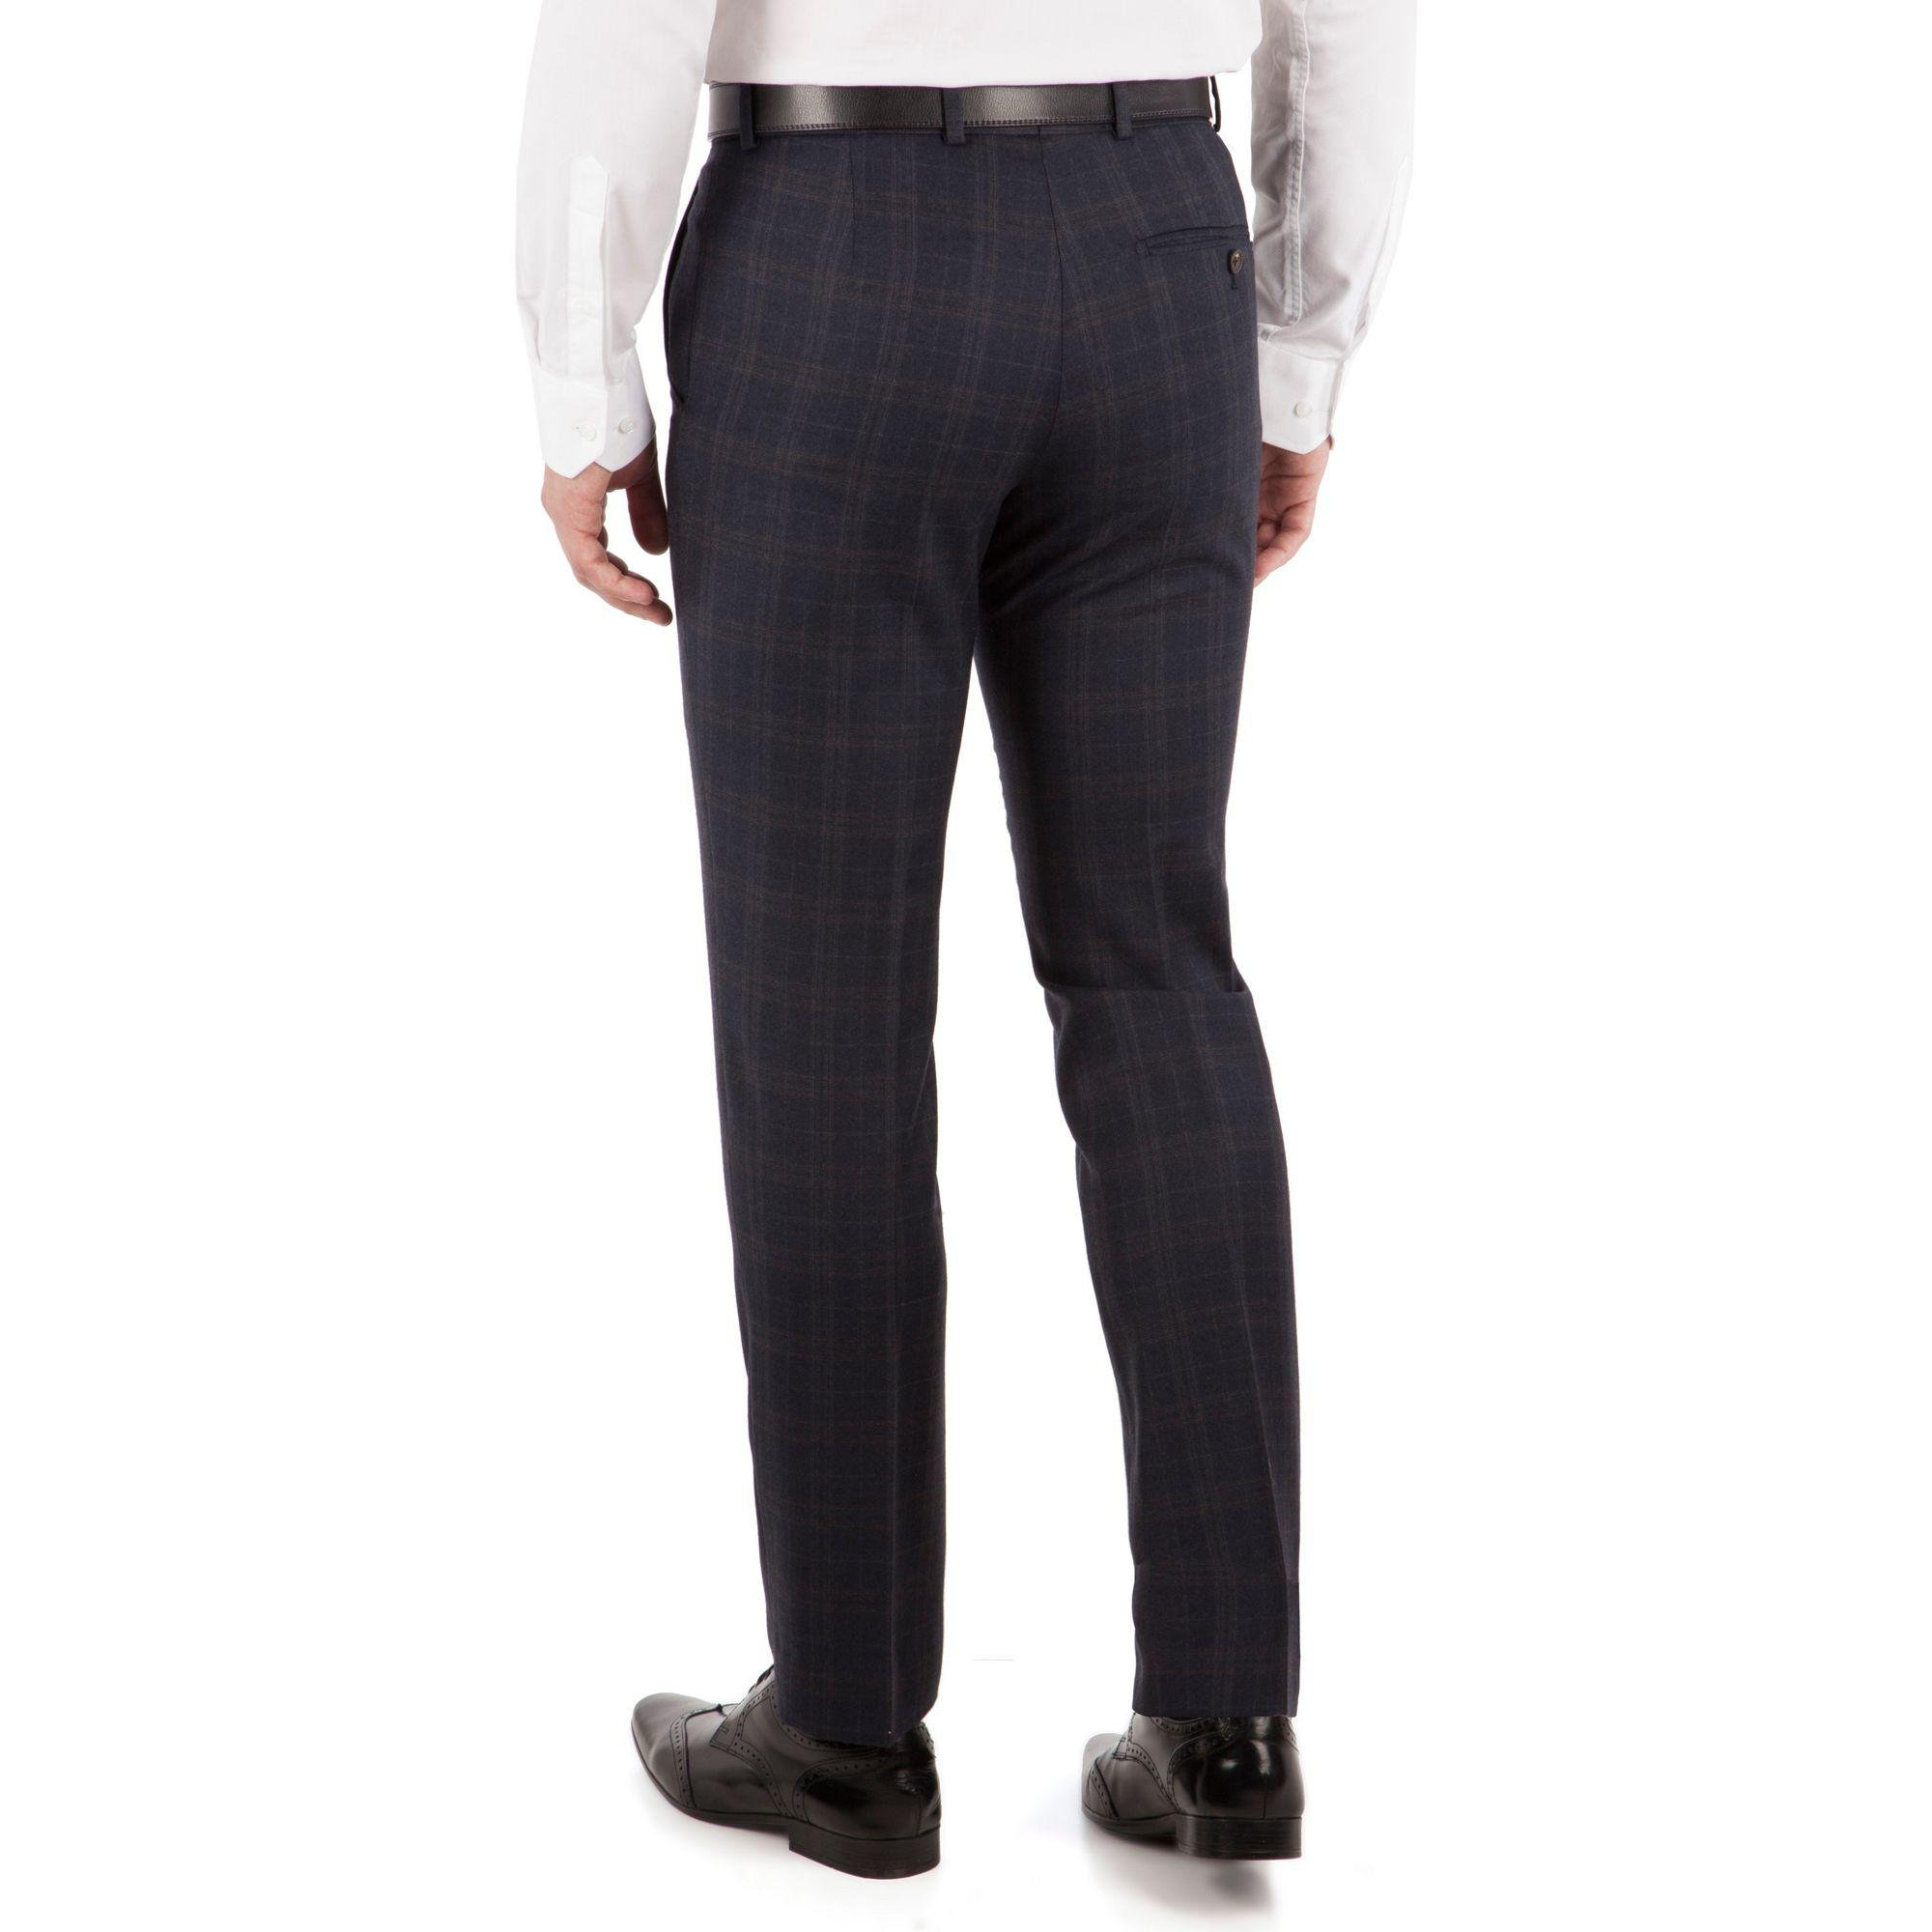 J By Jasper Conran Wool Navy With Caramel Check Flat Front Tailored Fit Luxury Suit Trouser in Blue for Men